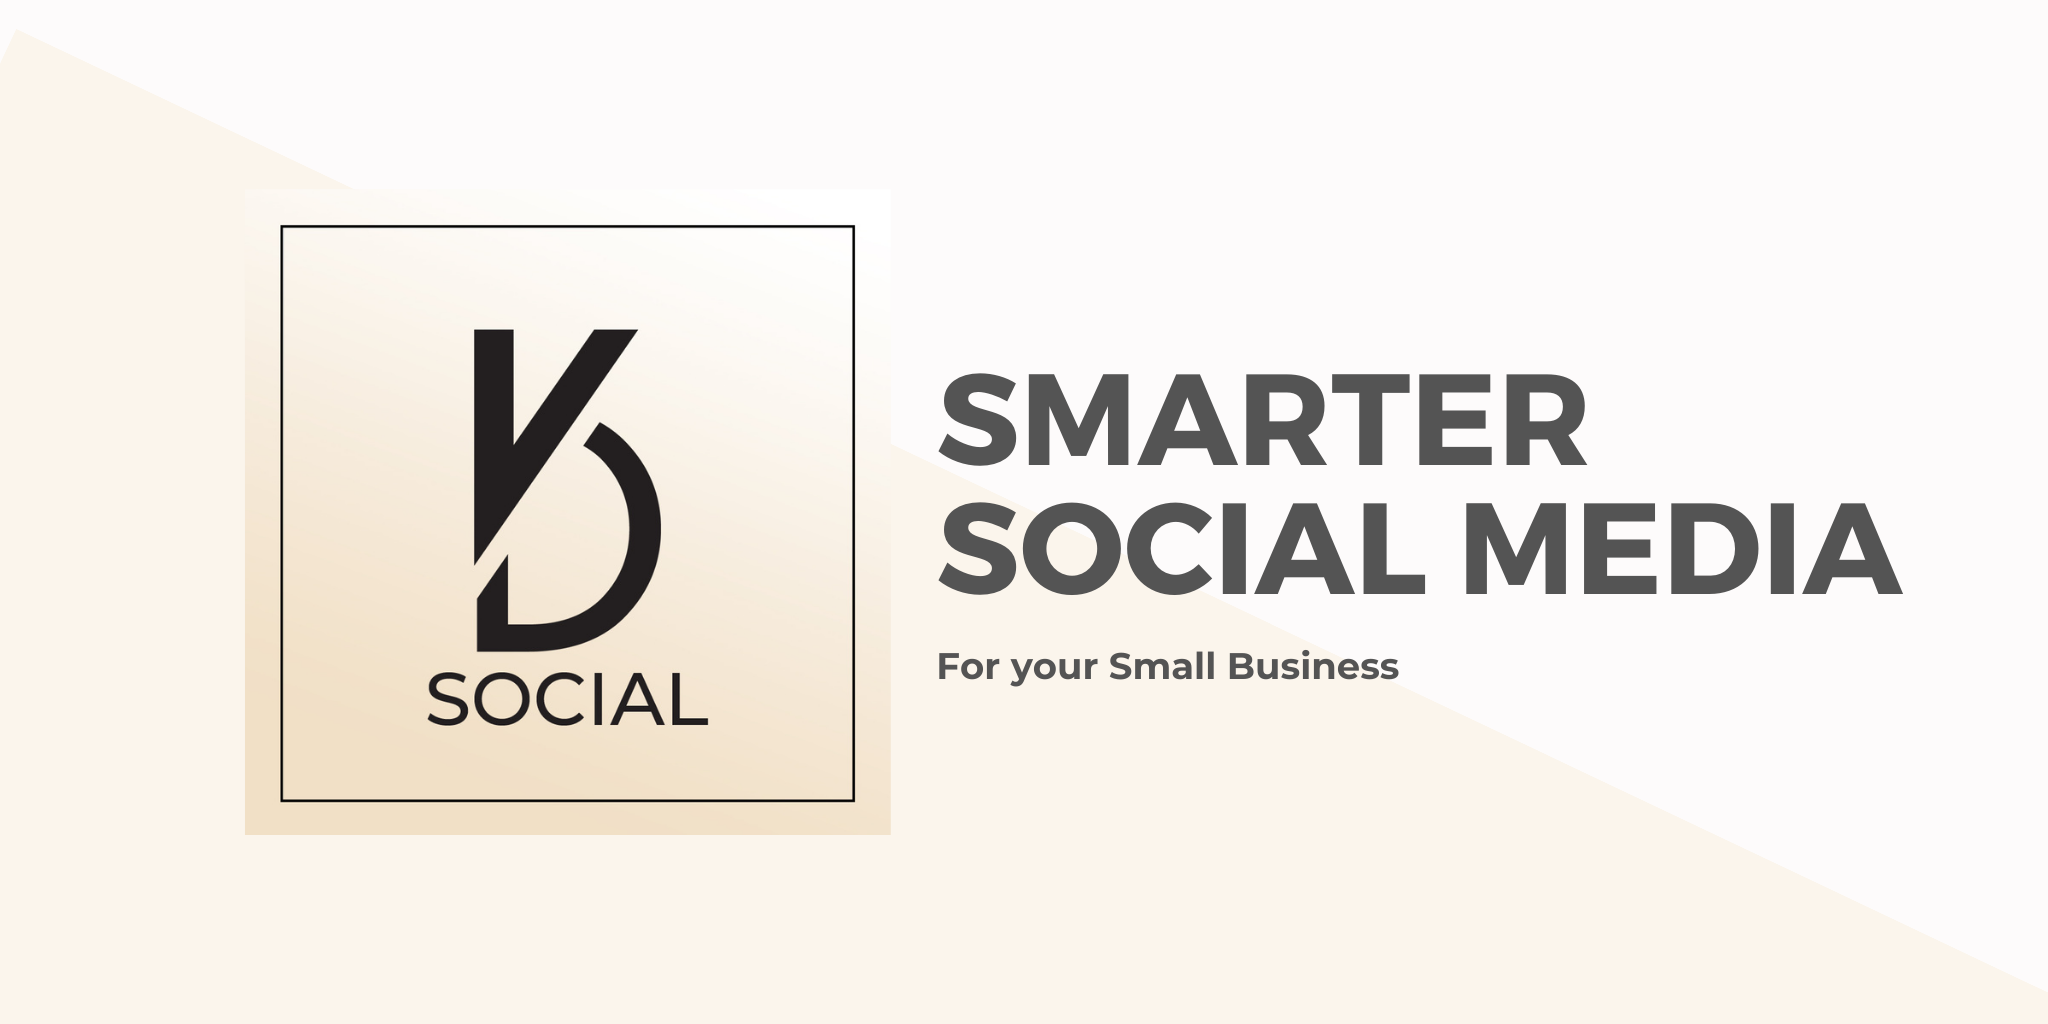 KD Social Smarter Social Media for your Small Business Logo